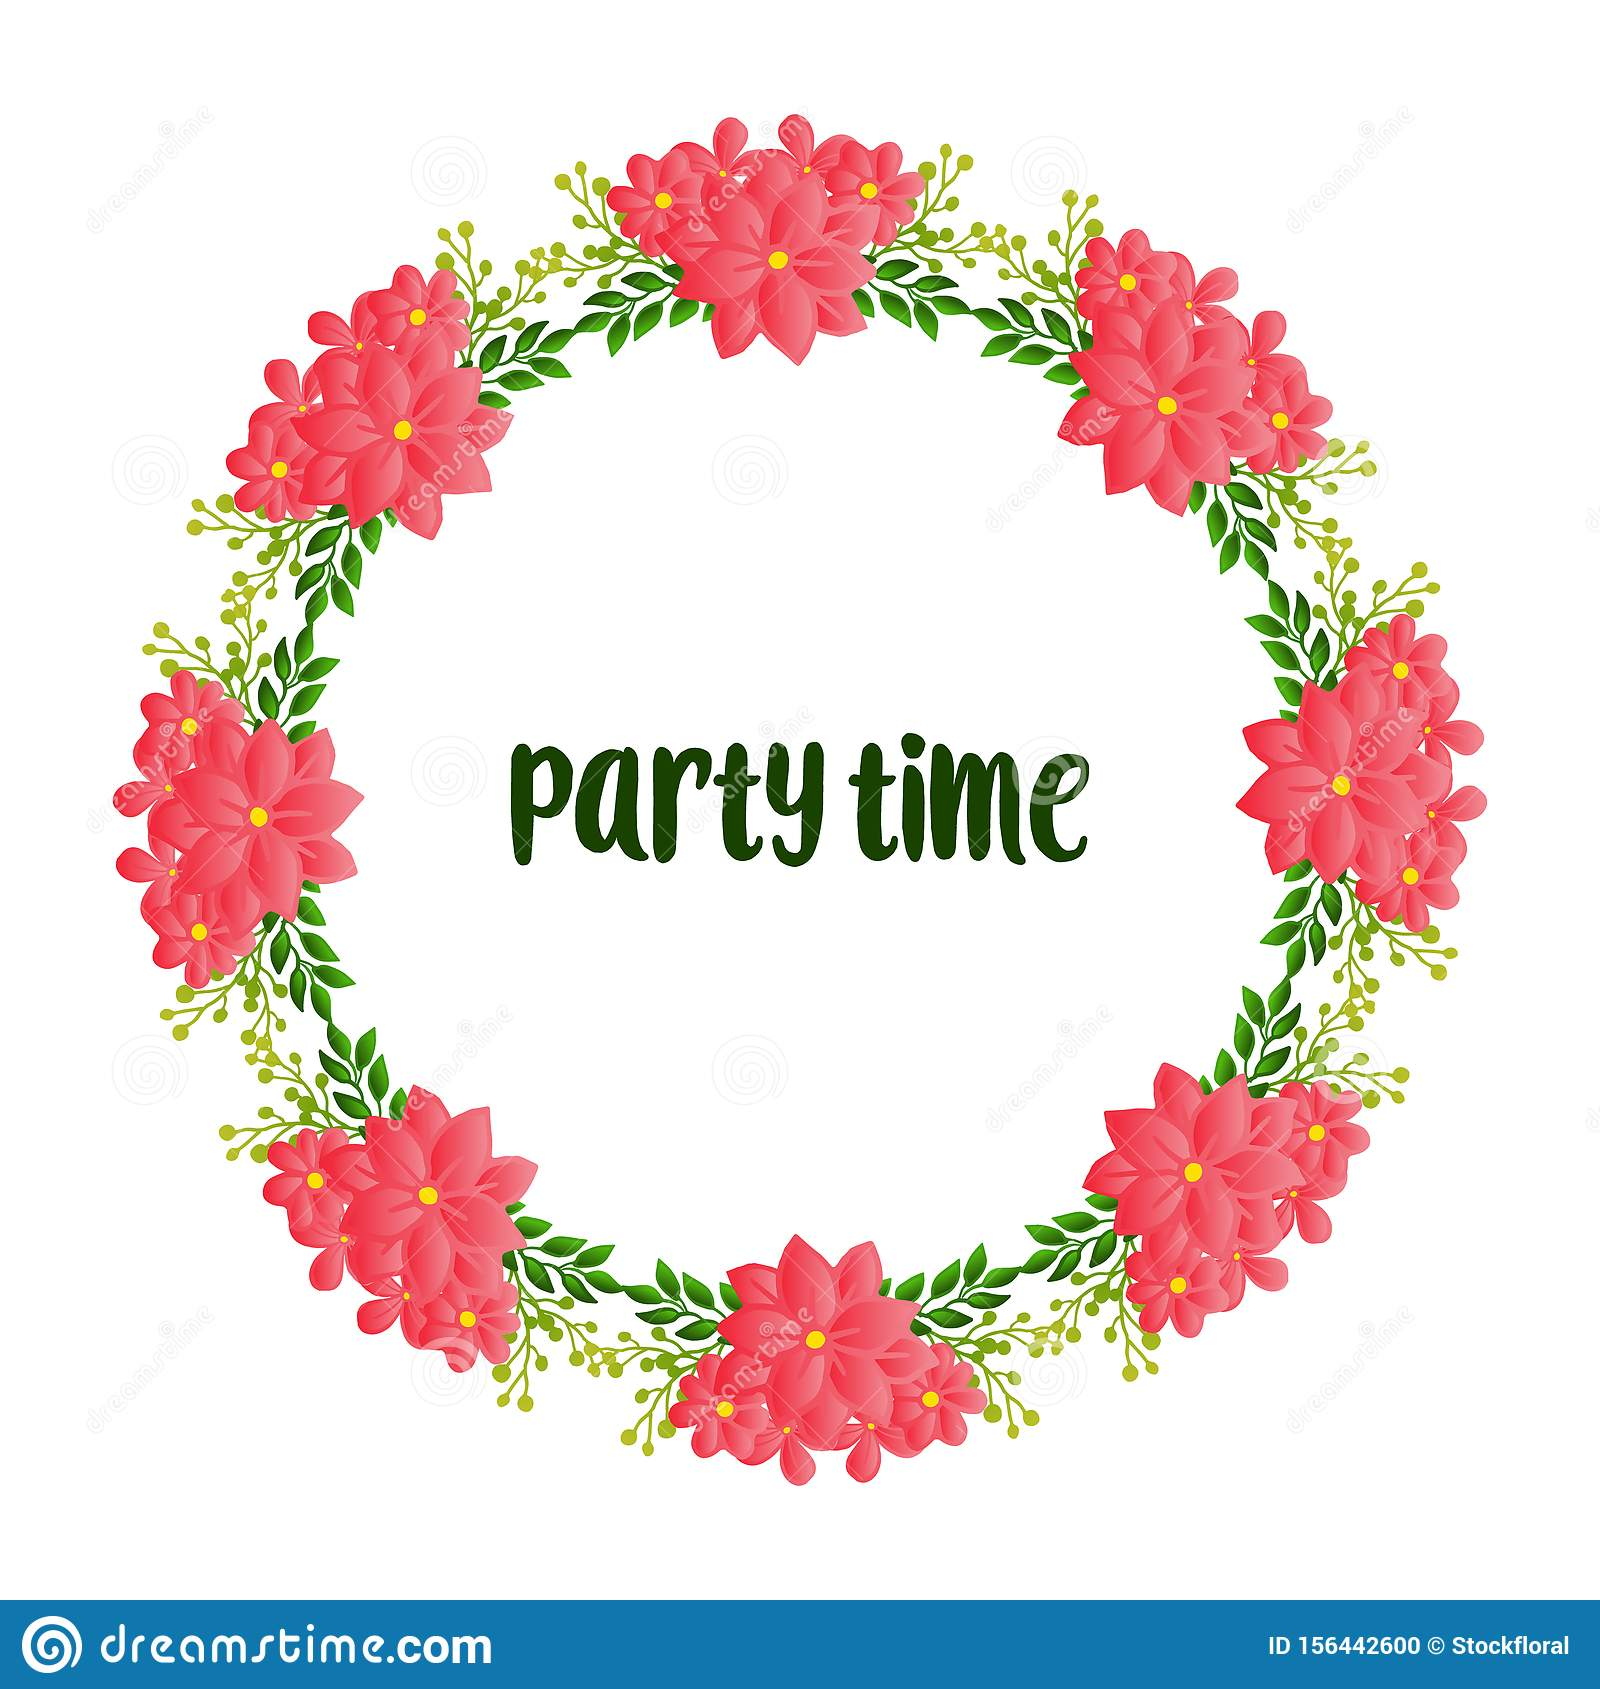 Beautiful poster invitation for party time, with texture of wreath frame blooms. Vector